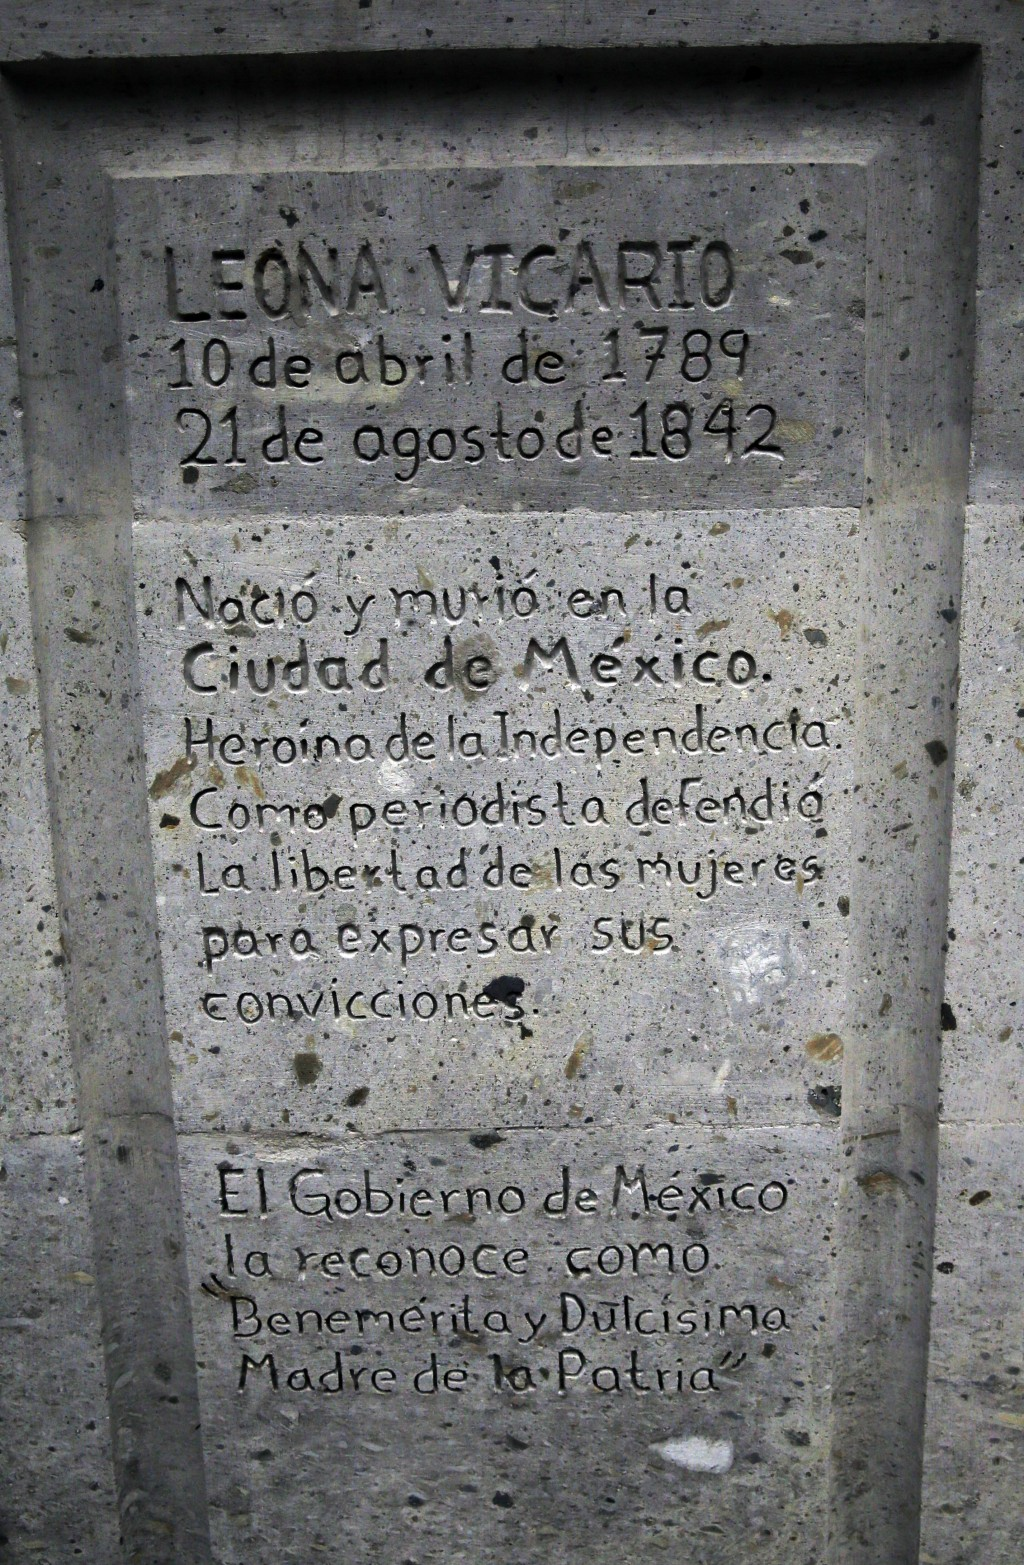 """The base that holds the statue of independence hero Leona Vicario has an inscription in Spanish that reads """"Leona Vicario 10 April 1788, 21 August 184..."""